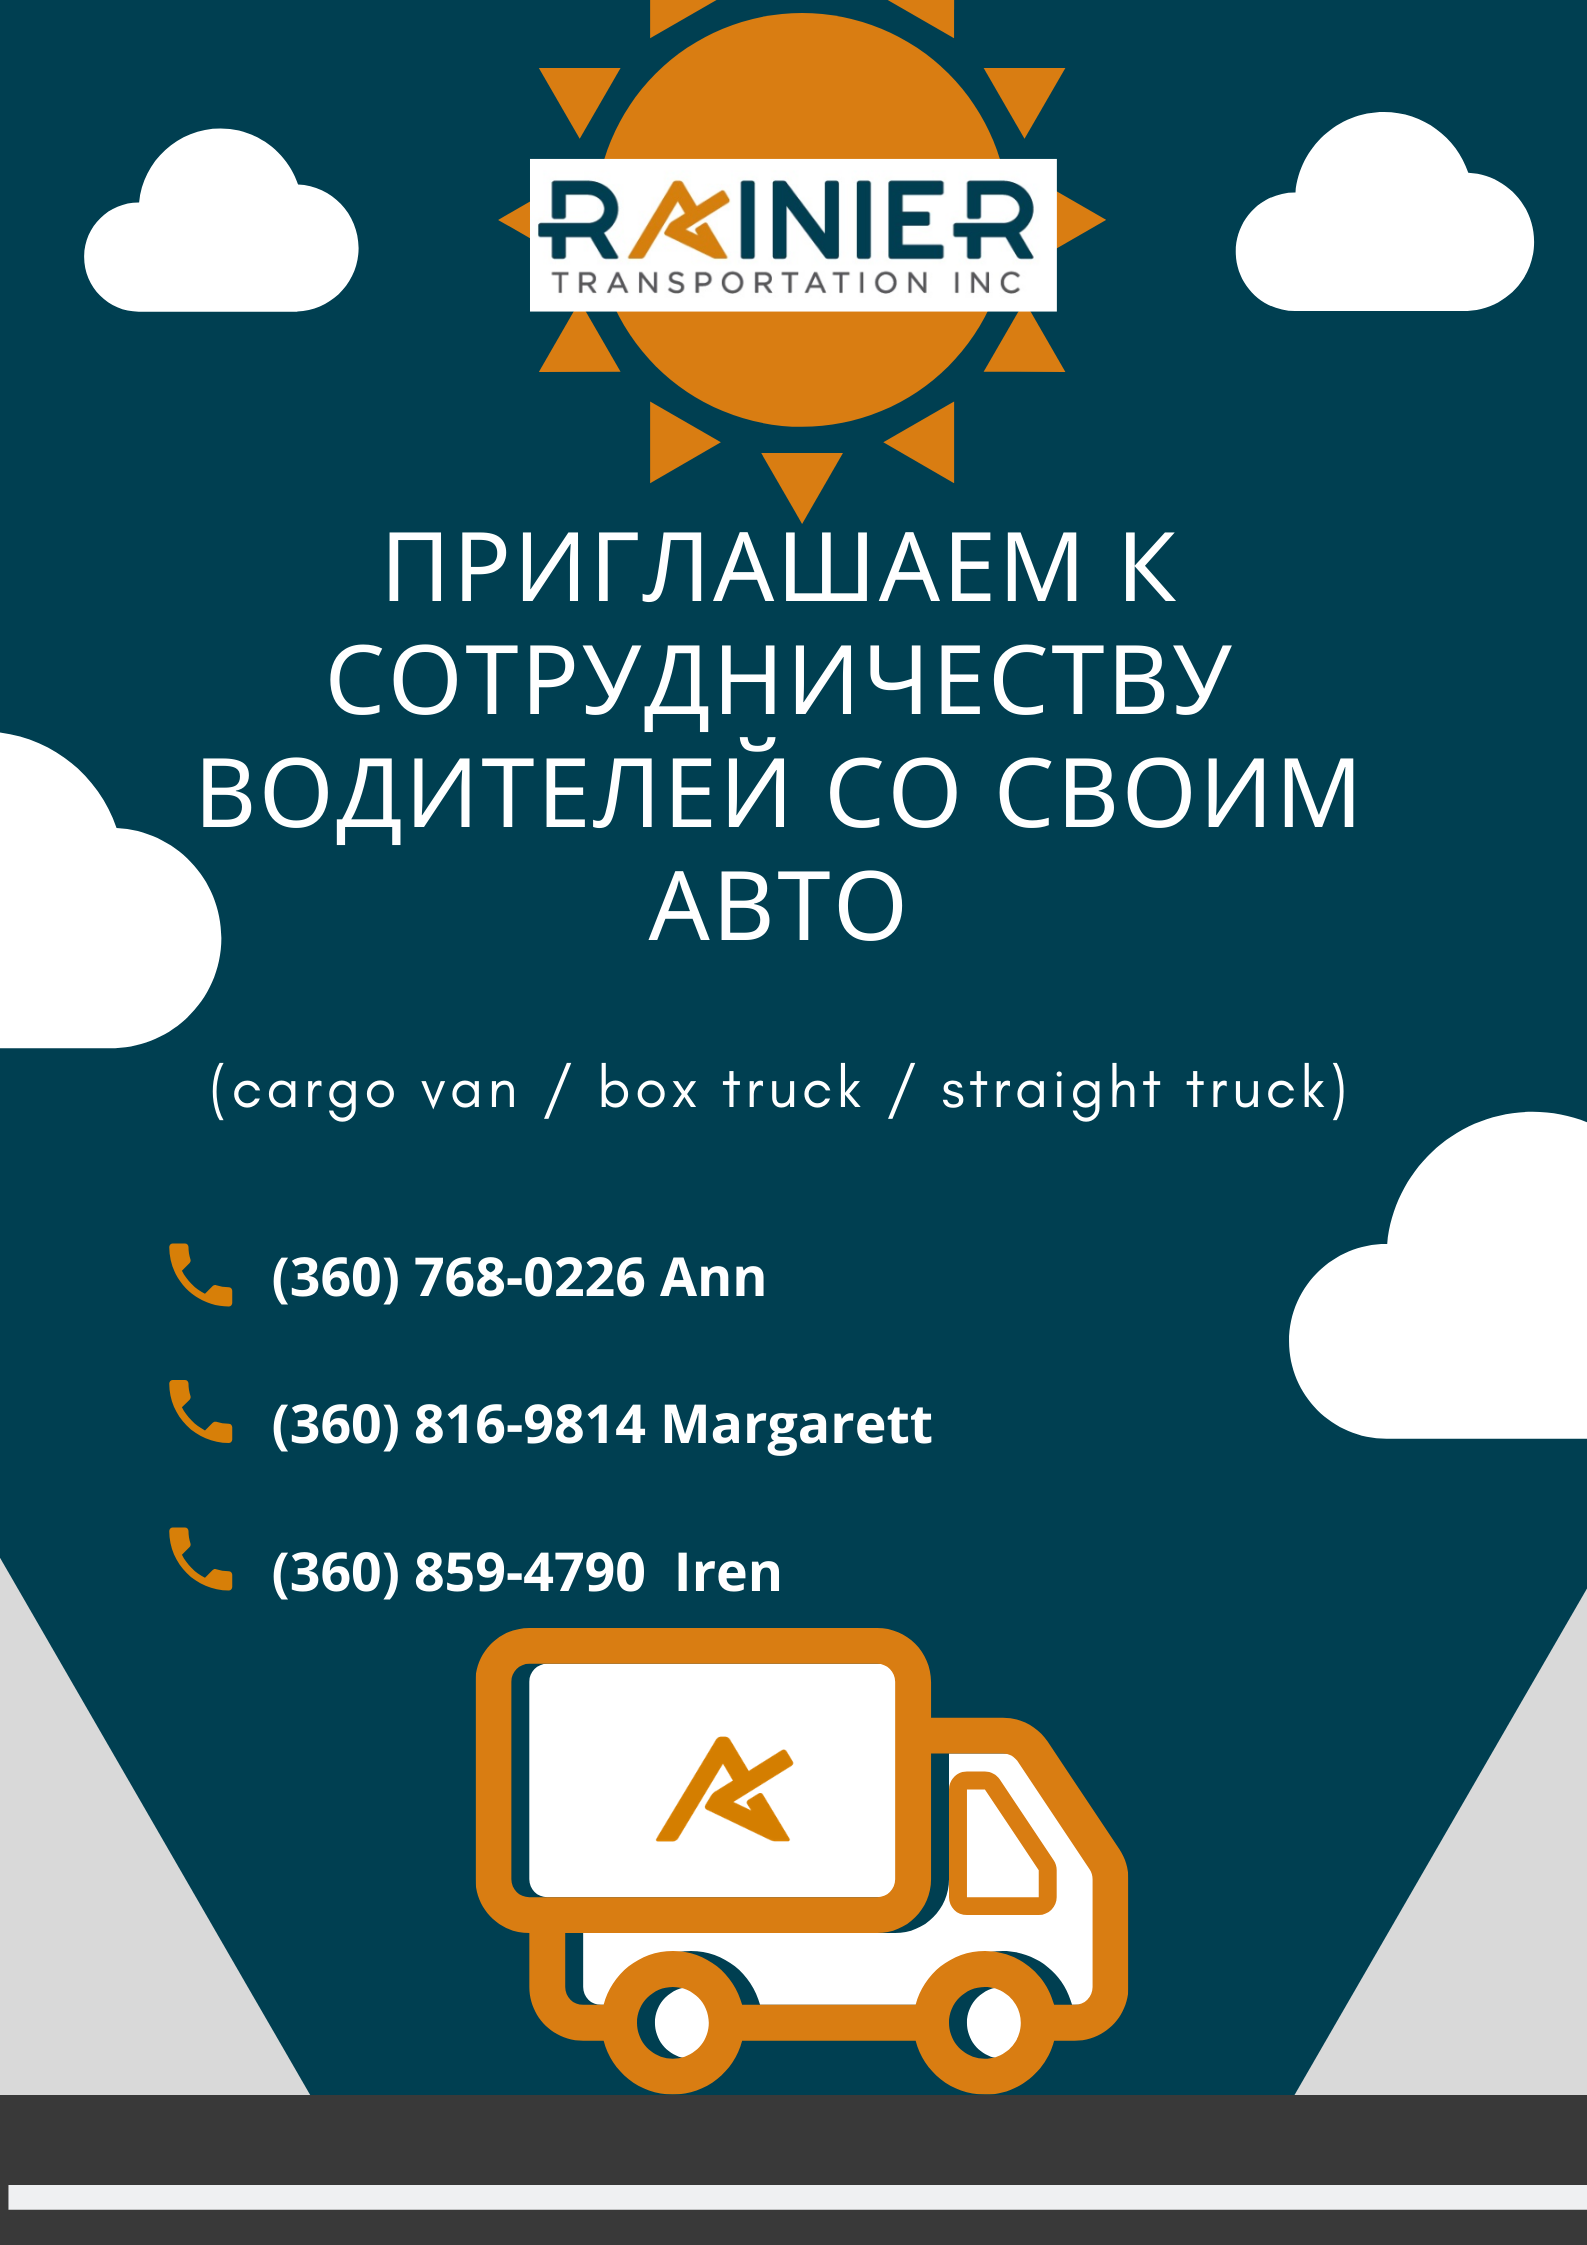 Invite drivers to cooperation with own truck